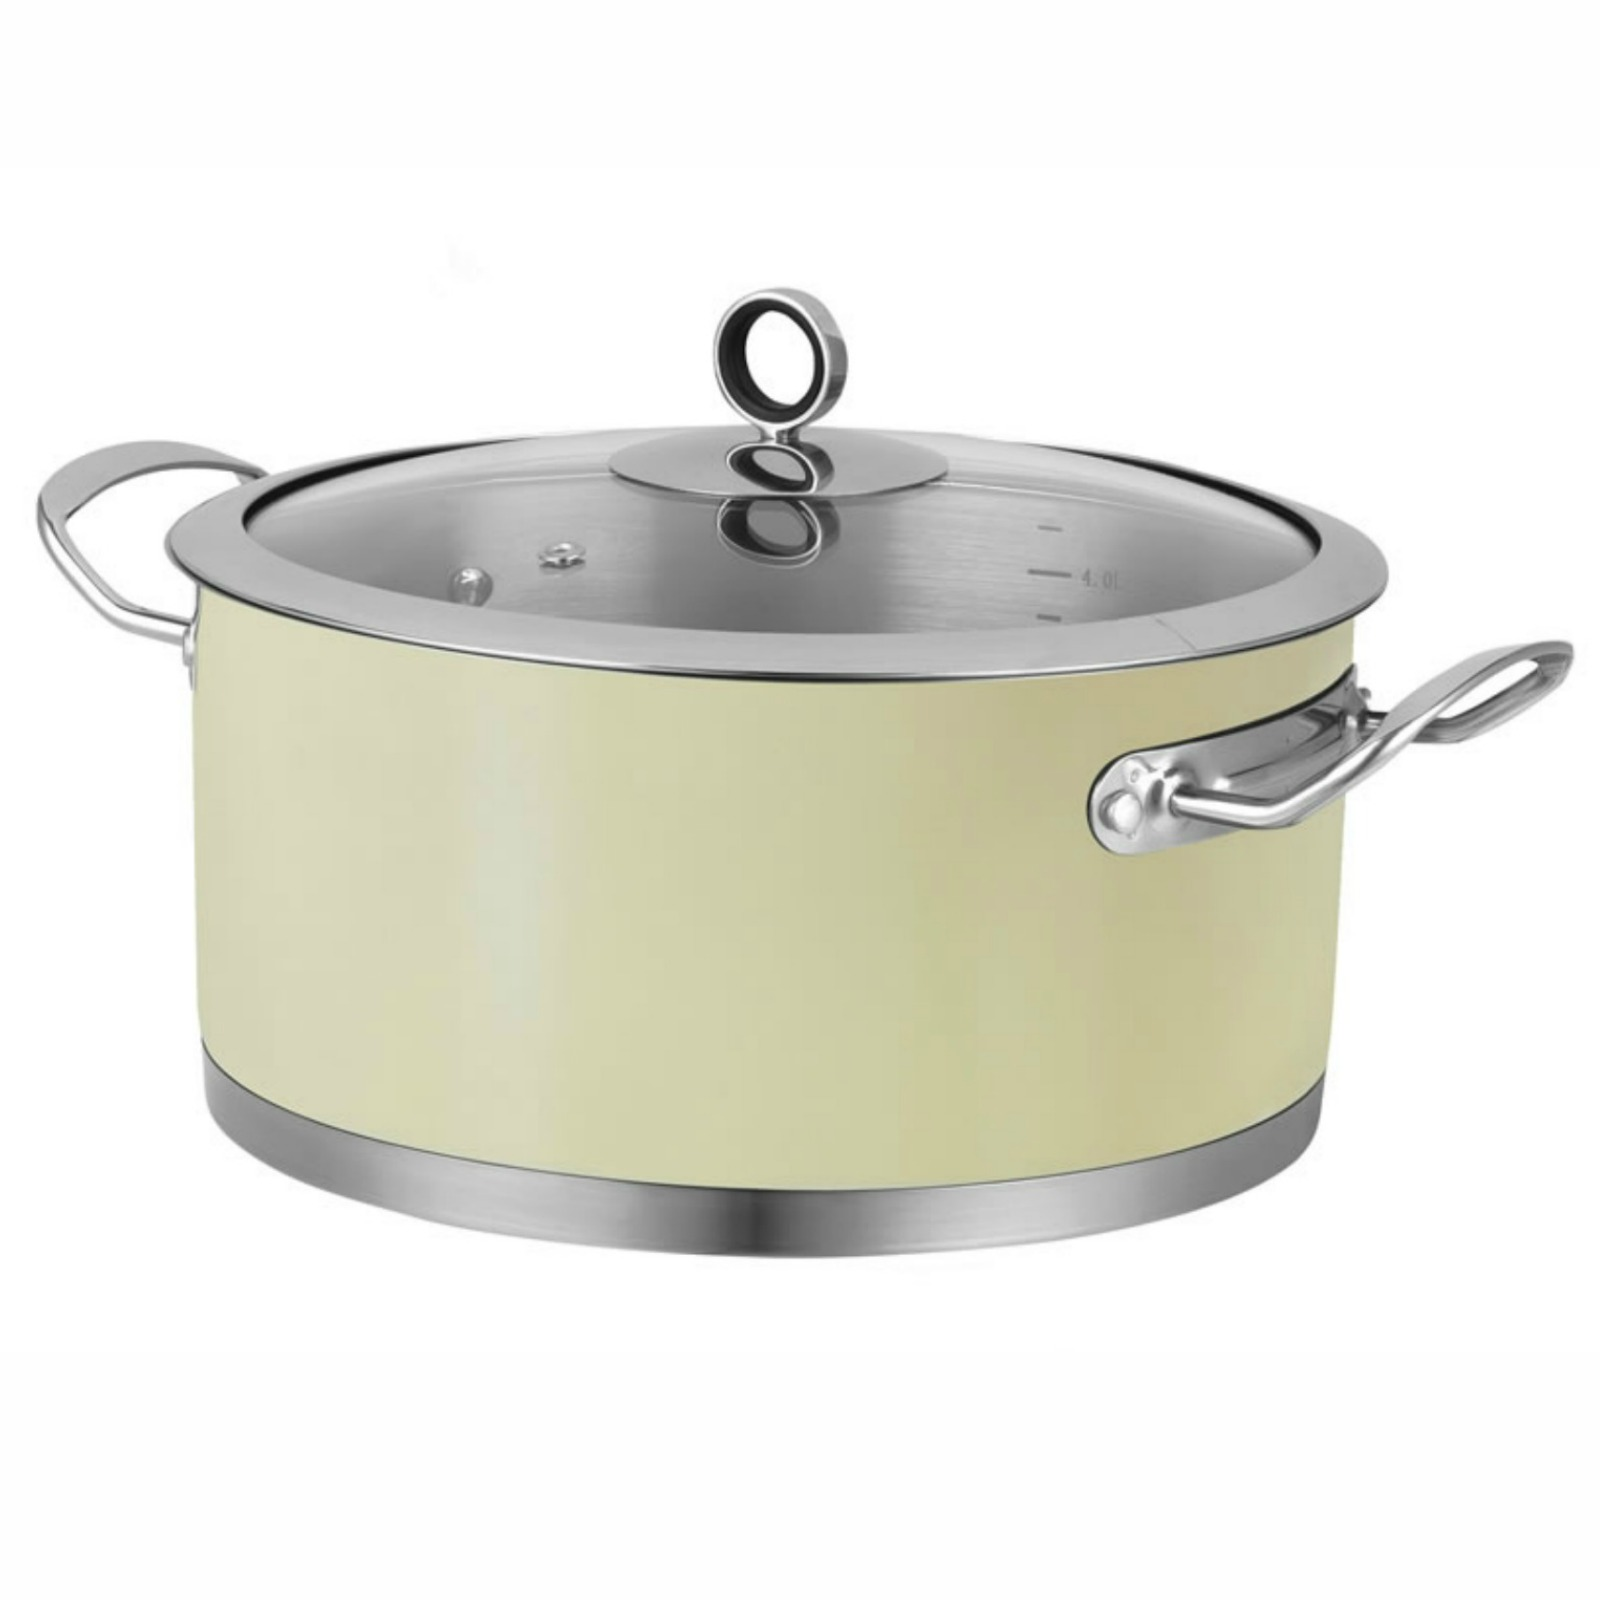 Morphy Richards 46372 Accents Casserole Pot with Lid 24 cm Cream eBay